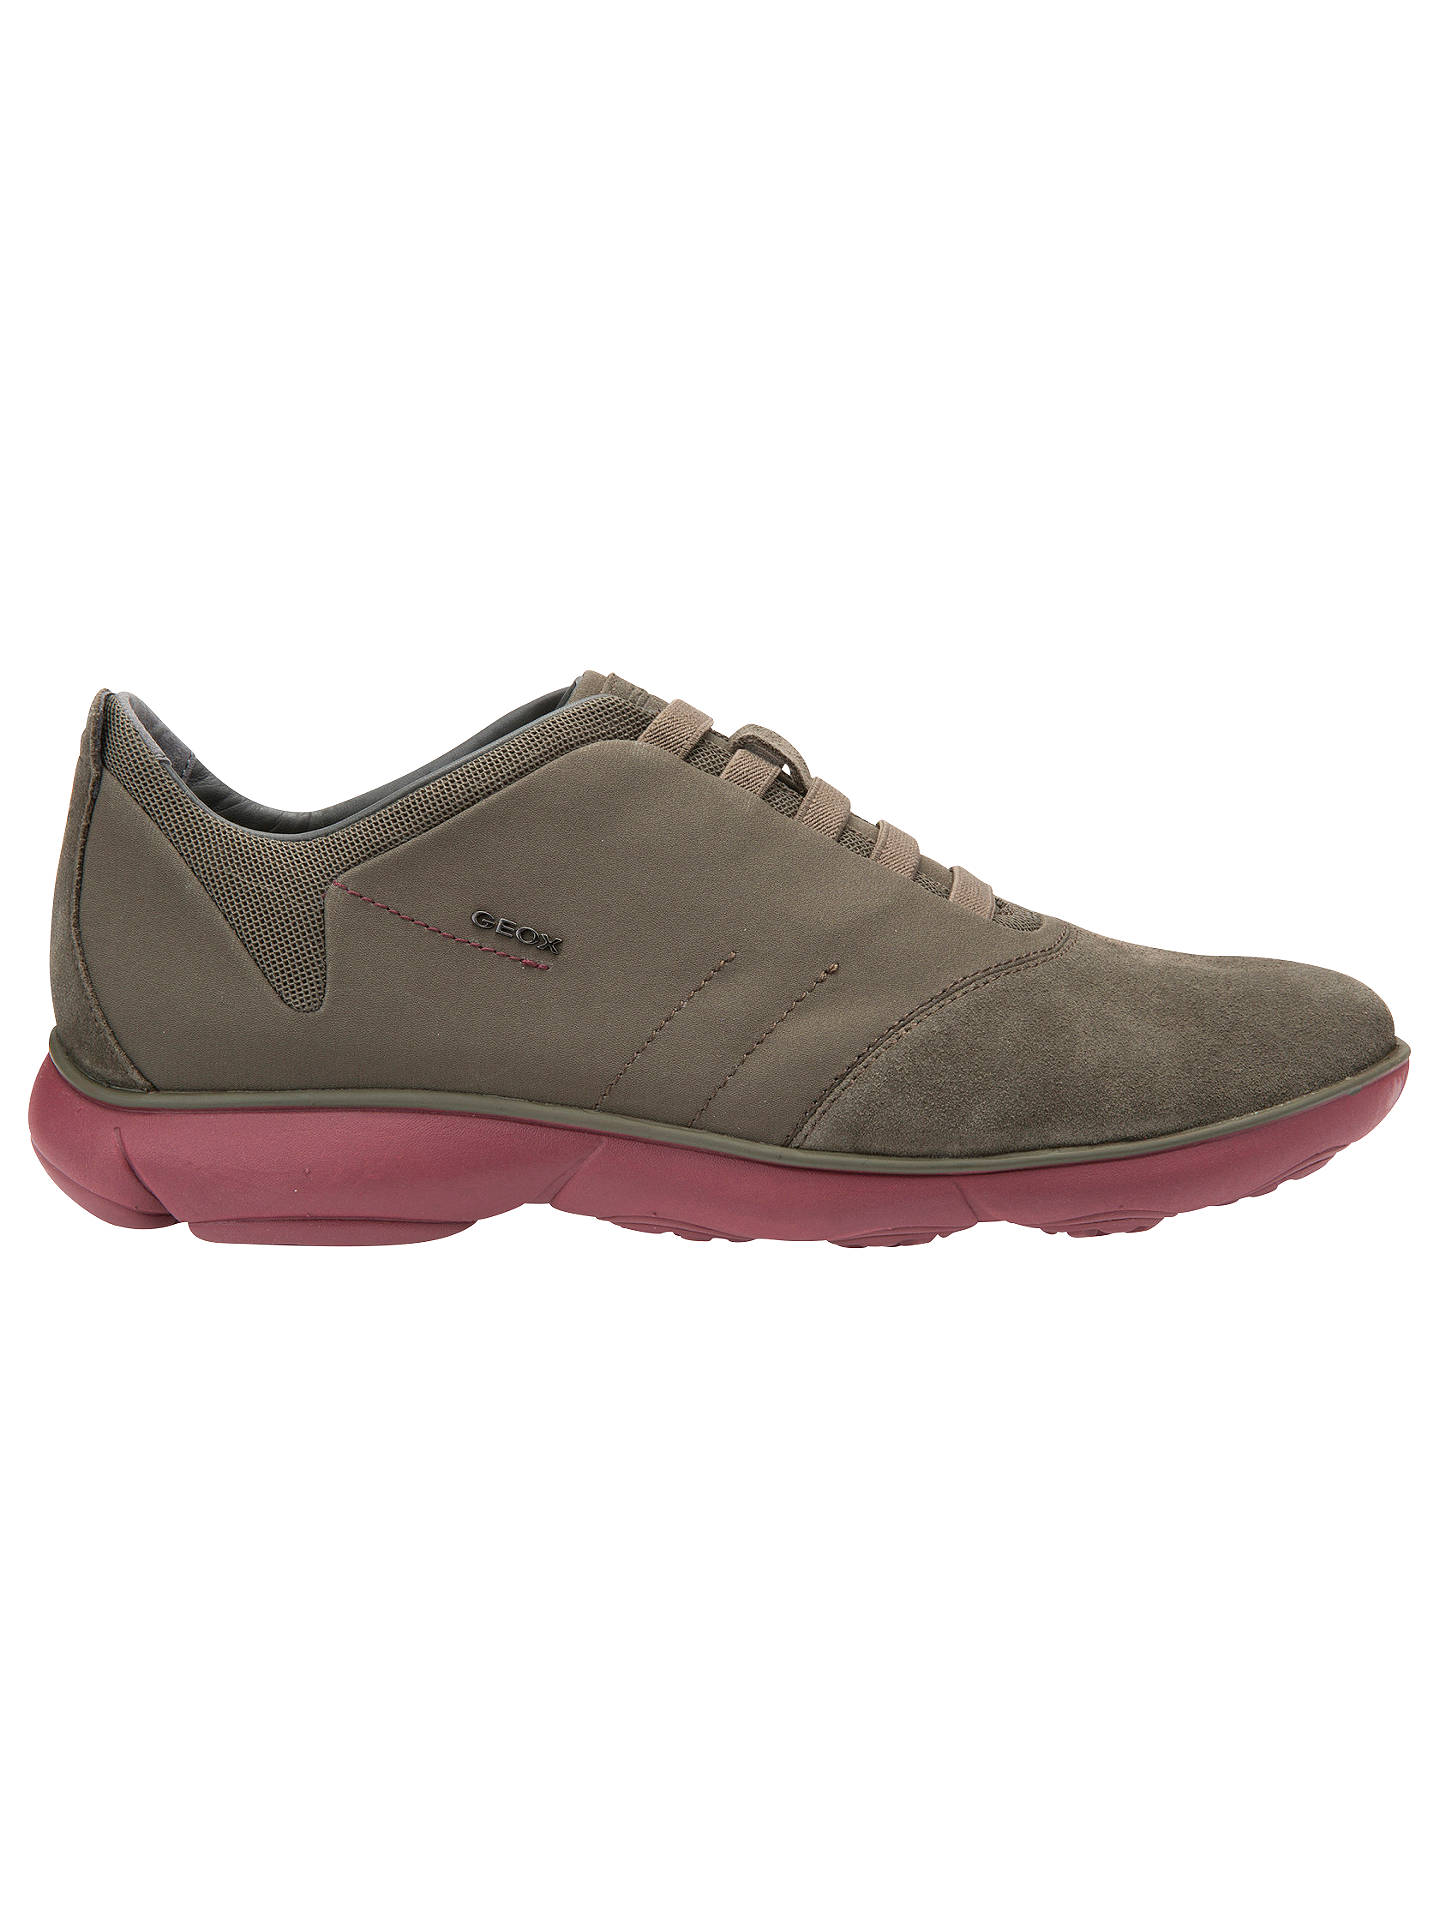 2afc77ae5a Buy Geox Nebula Trainers, Military/Dark Red, 7 Online at johnlewis.com ...